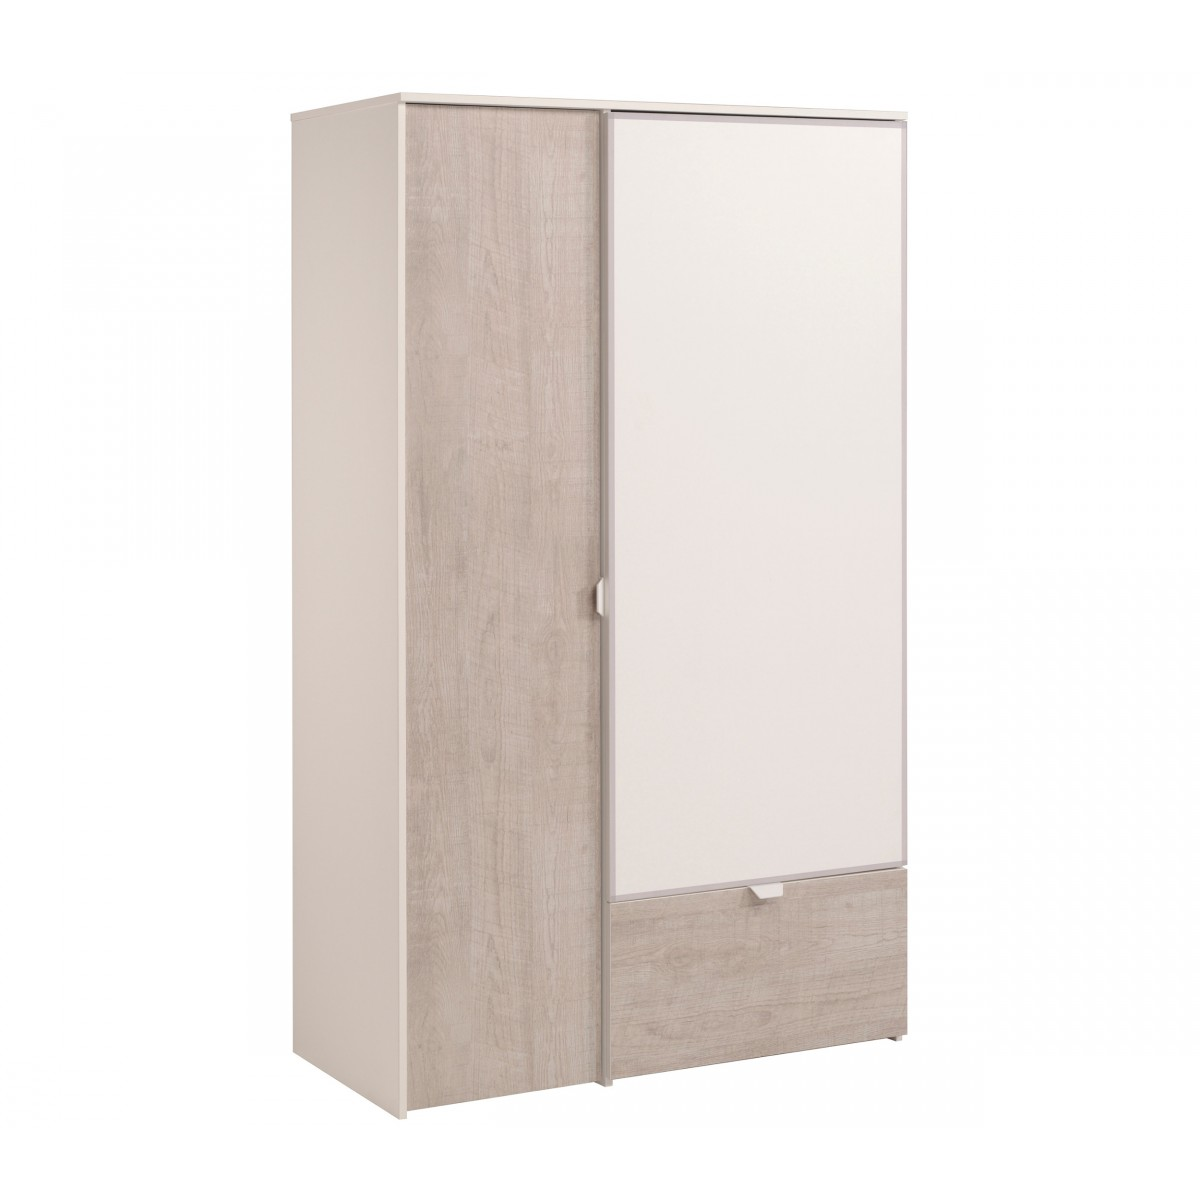 terre armoire 2 portes 1 tiroir blanc et gris loft boris. Black Bedroom Furniture Sets. Home Design Ideas